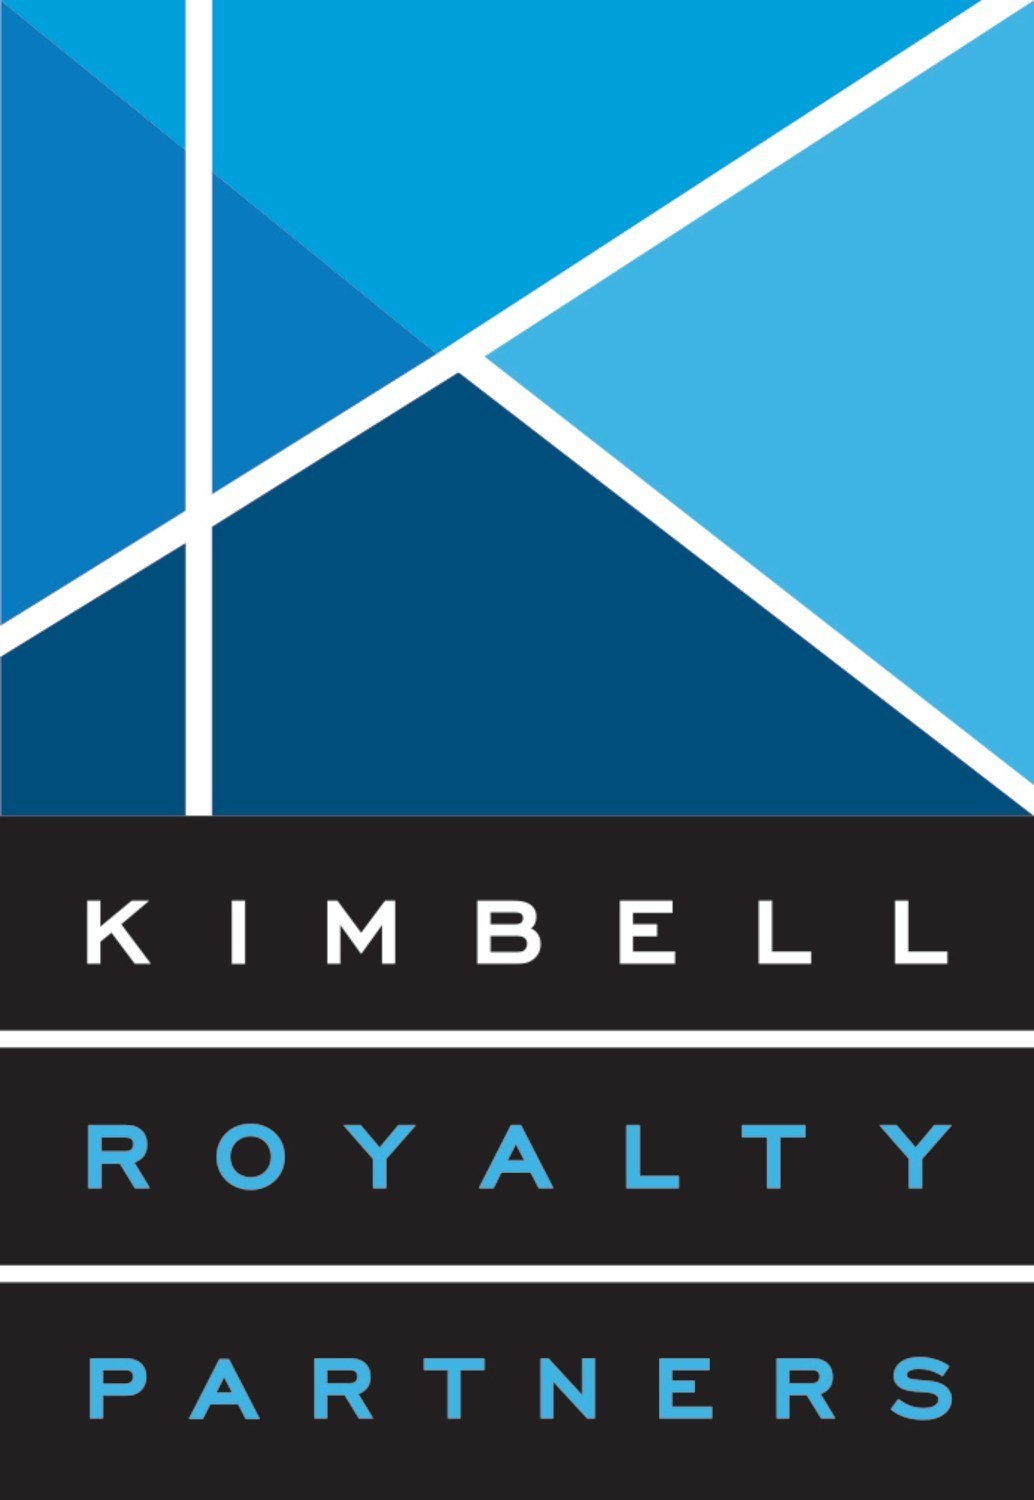 Kimbell Royalty Partners Lp Closes Mineral And Royalty Acquisition From Encap Investments L P Provides 2019 Guidance